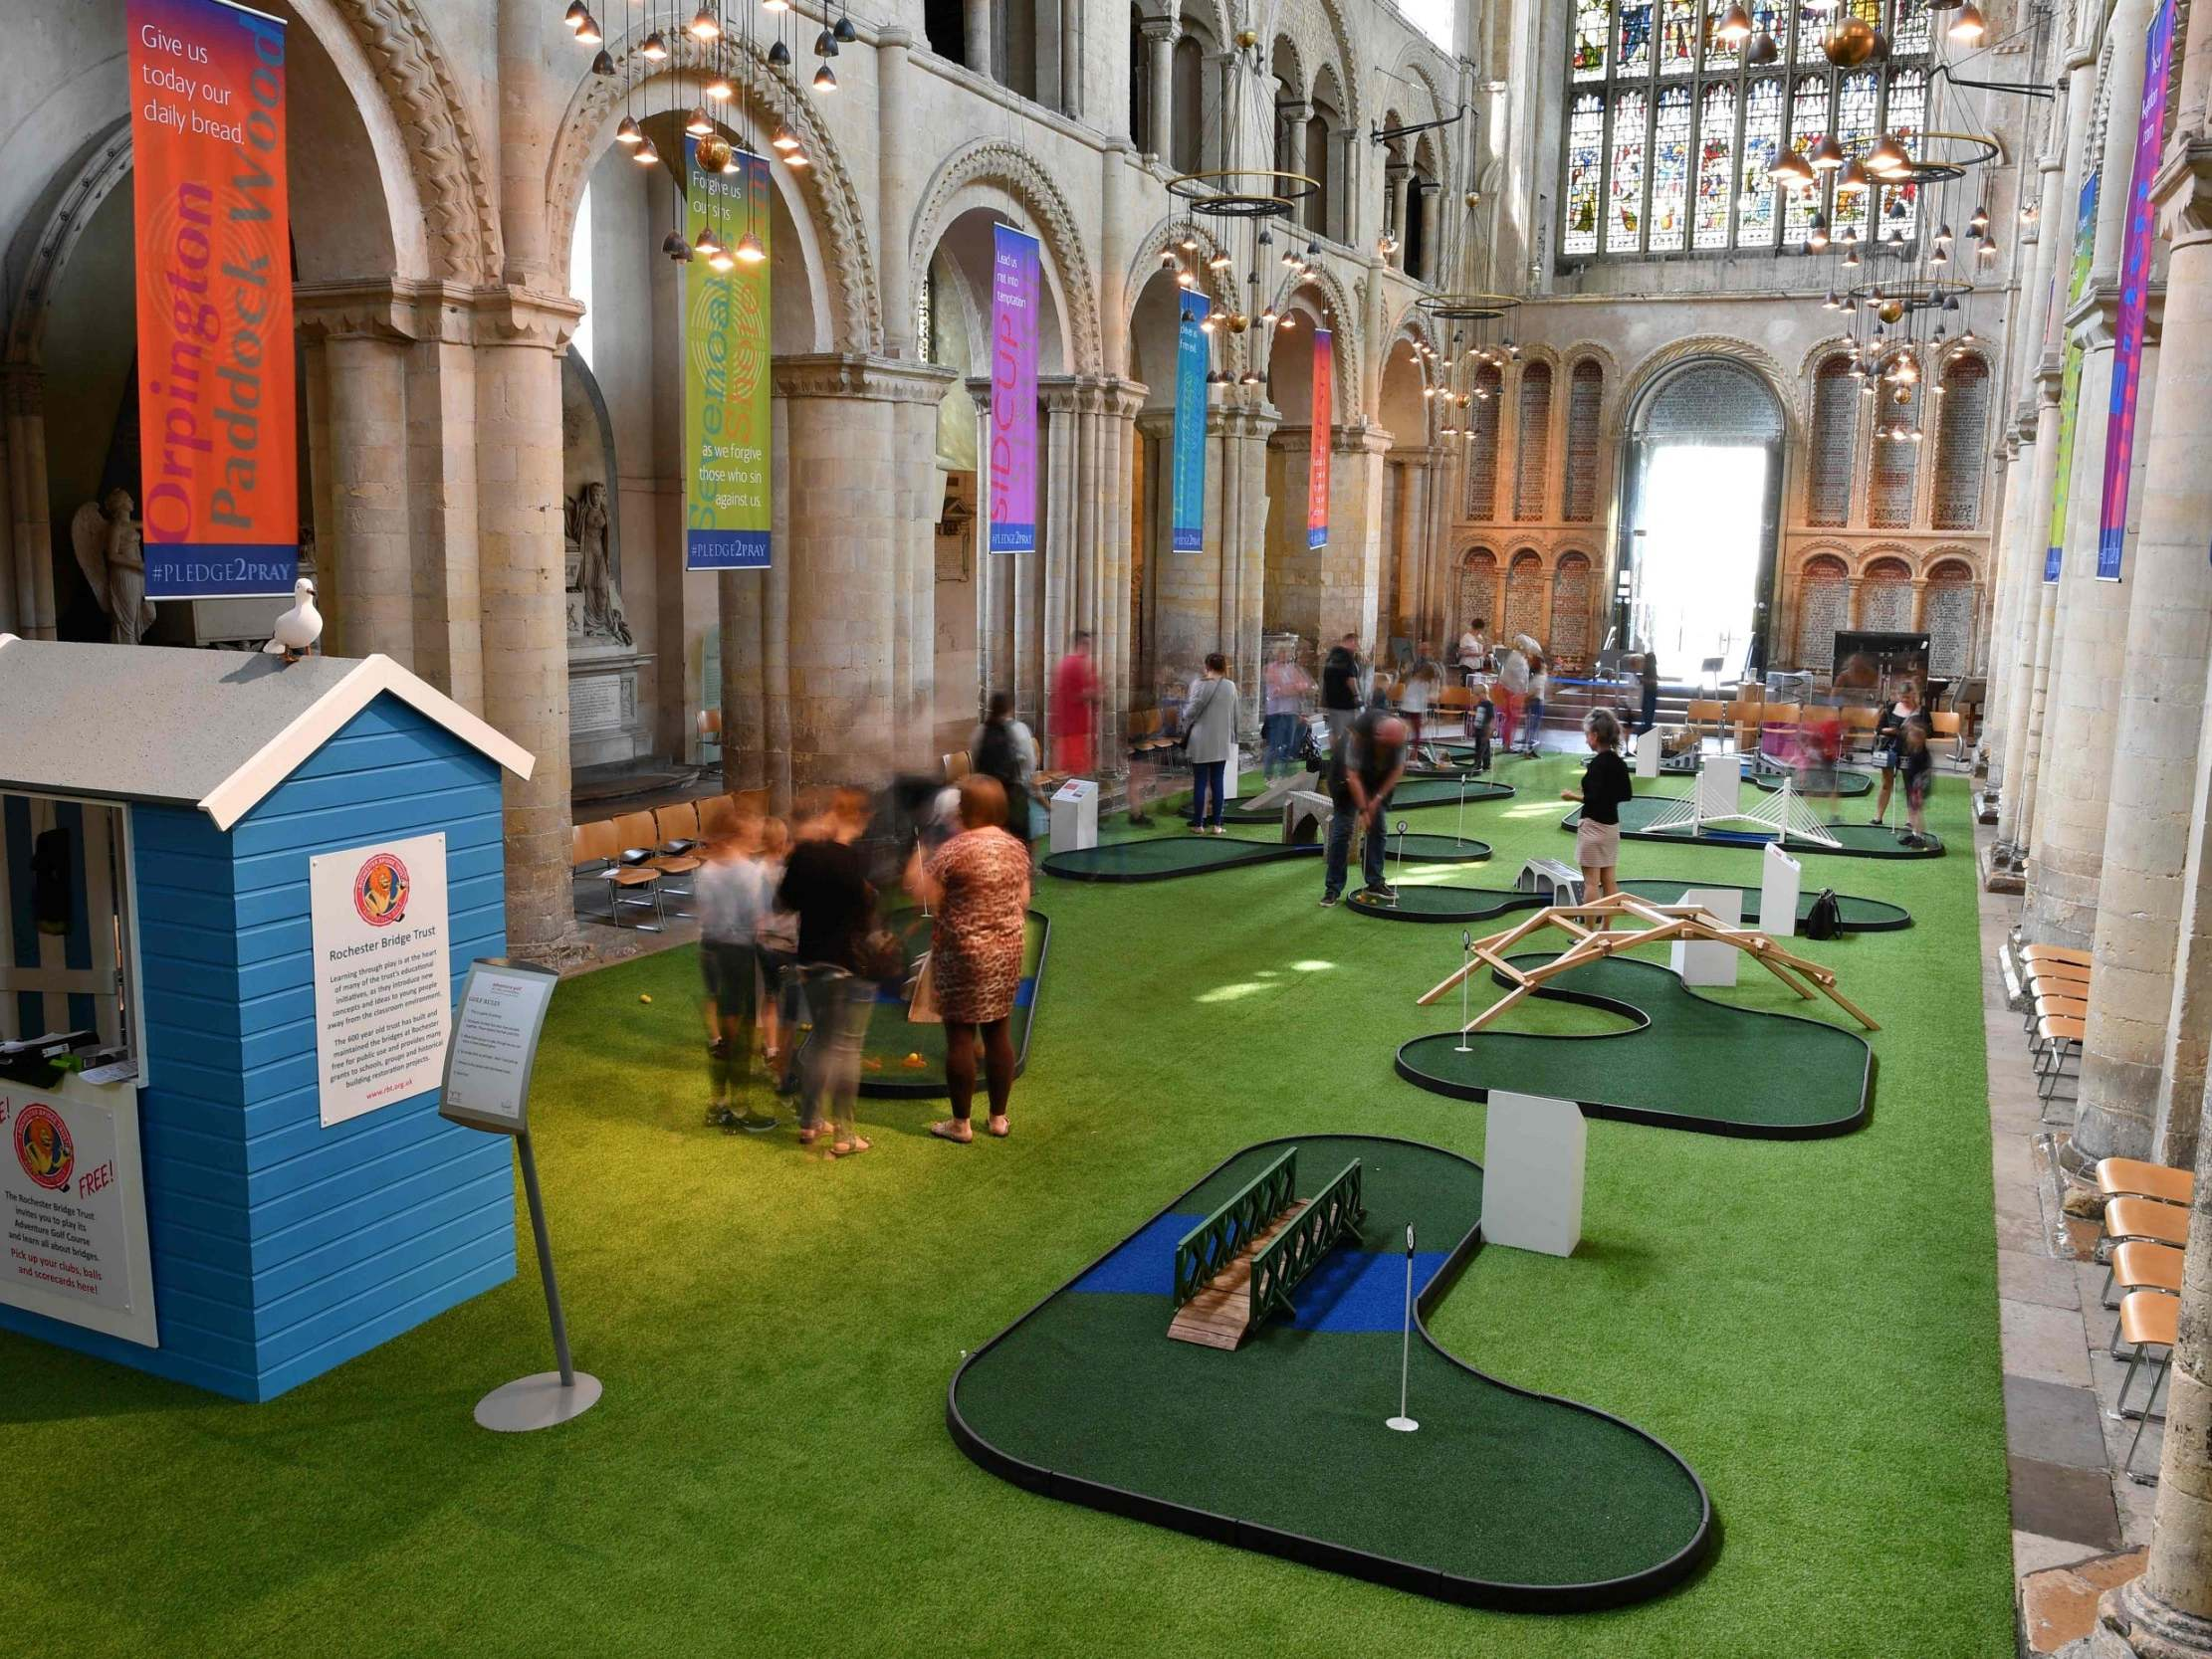 'This isn't f****** Disneyland': Furious drunk man storms cathedral after crazy golf course installed in nave, court hears